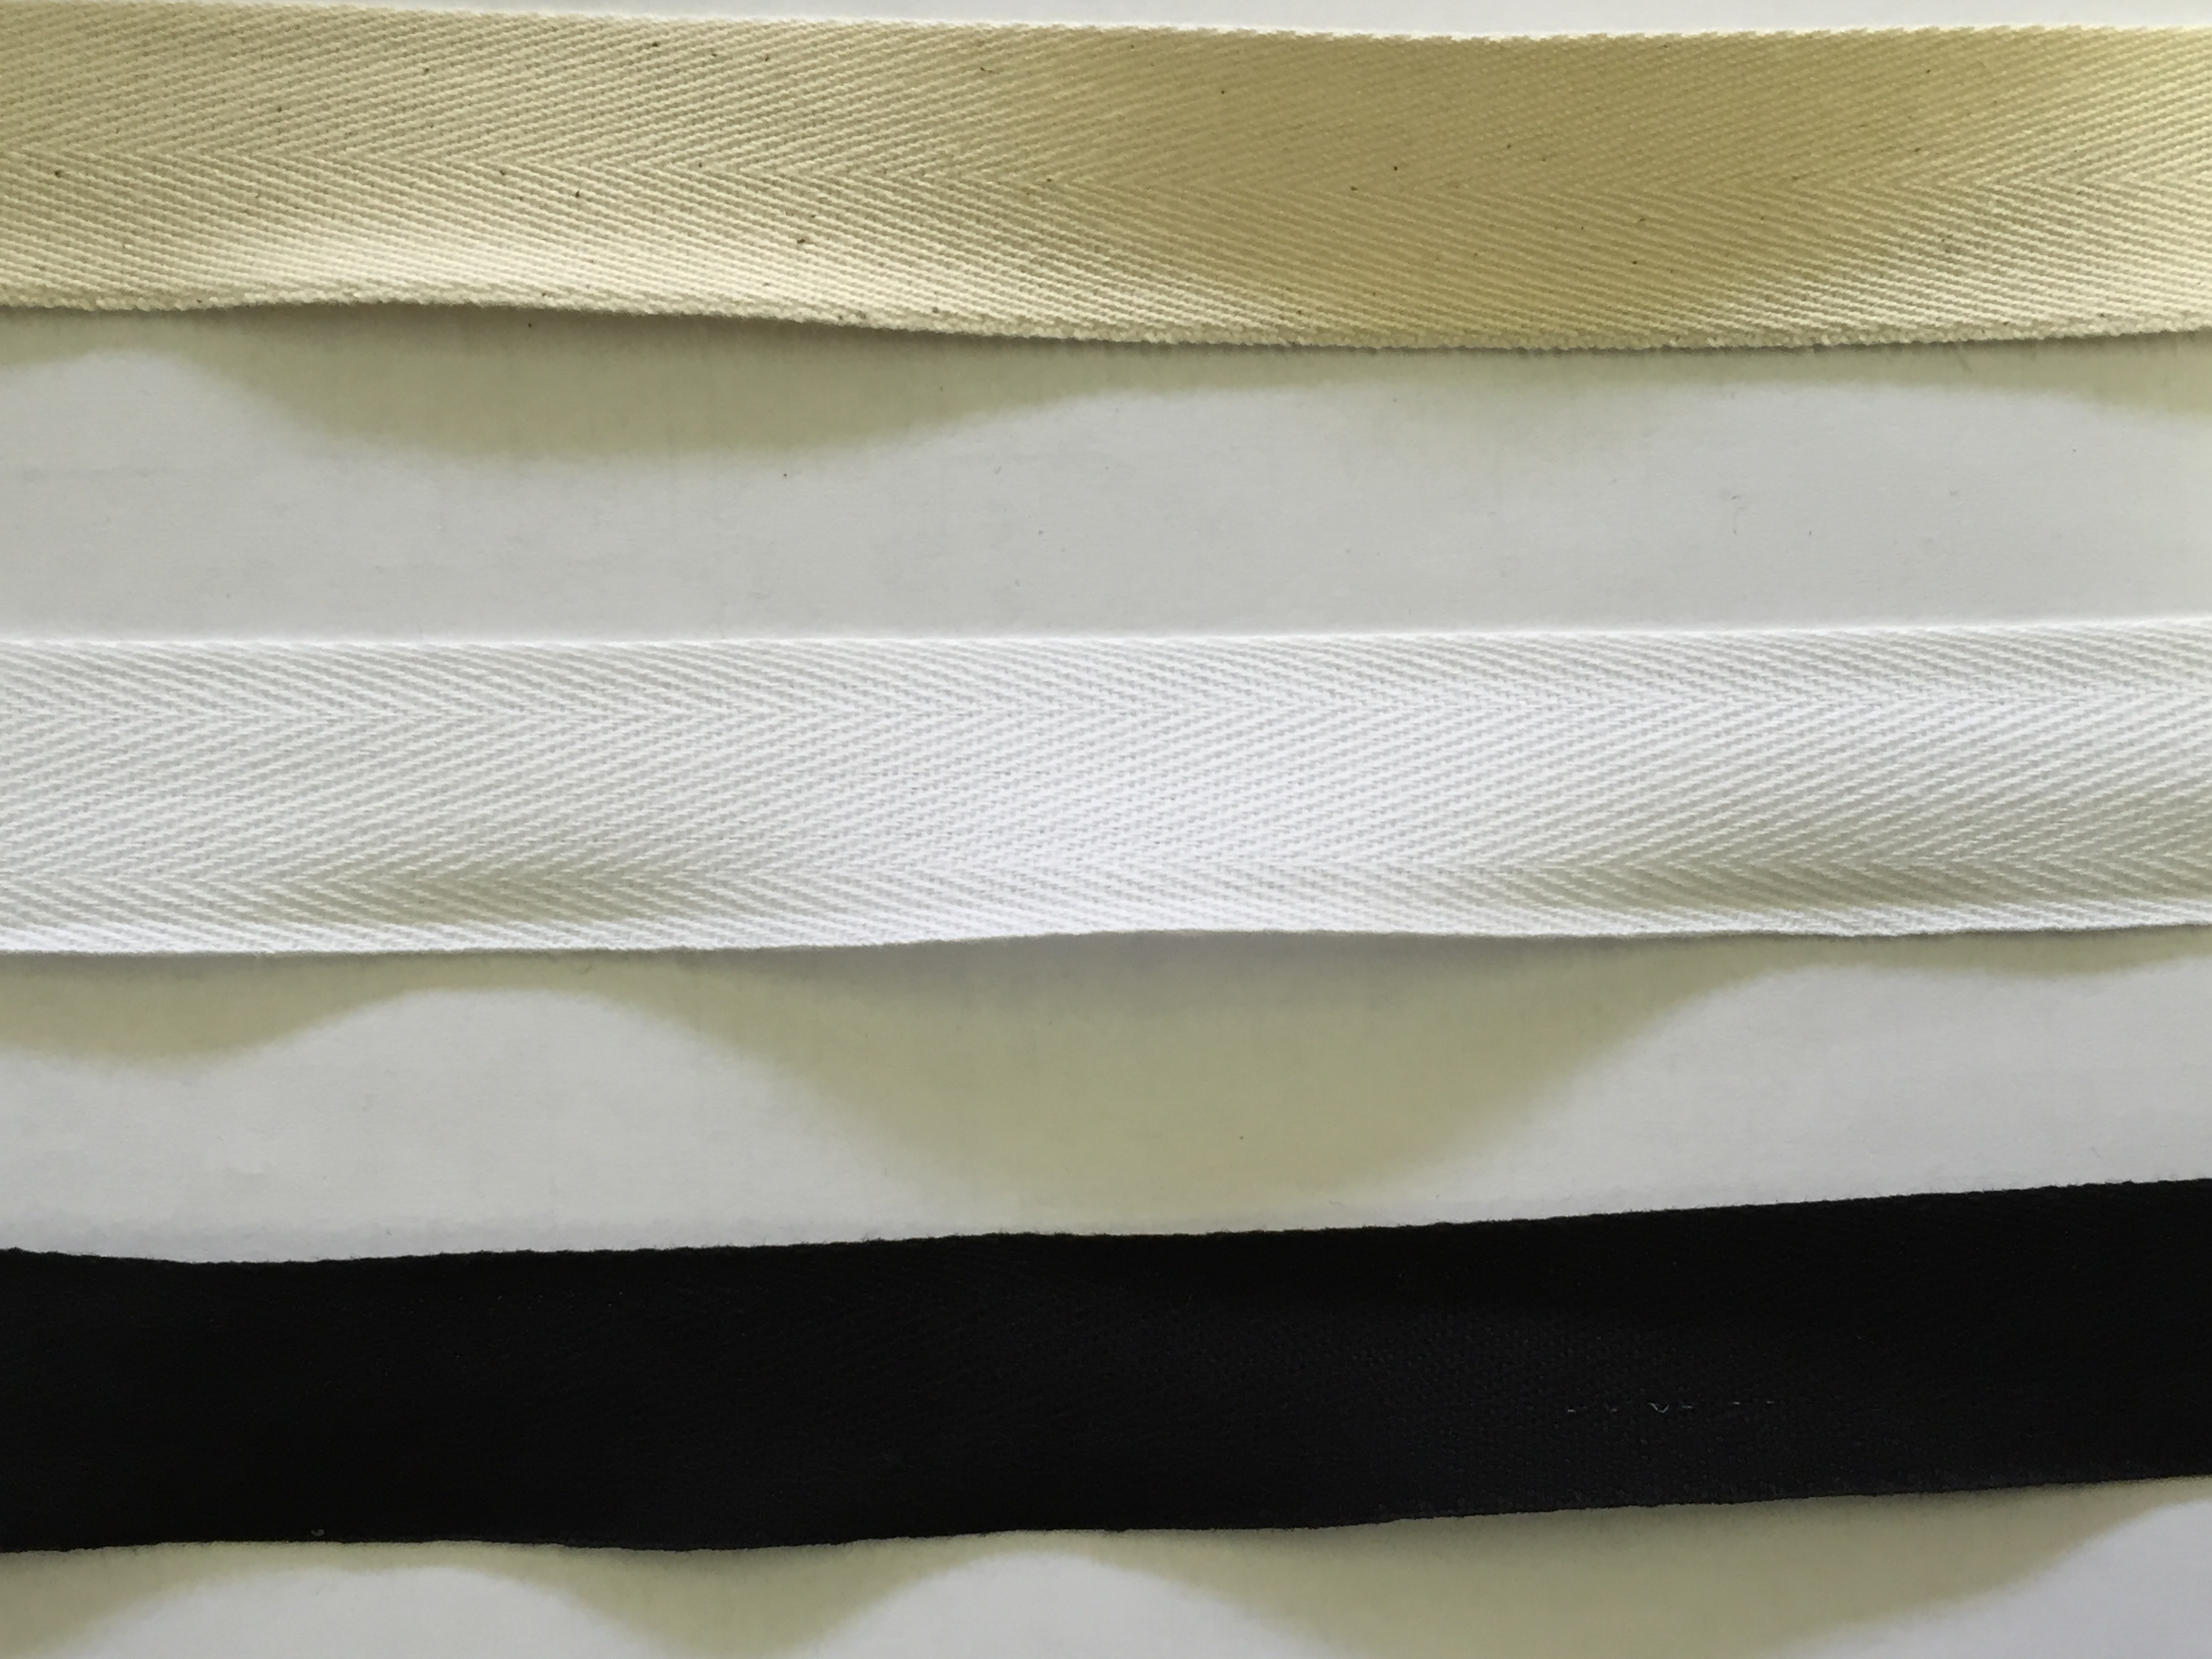 Webbing And Twill Tape Fabrictime